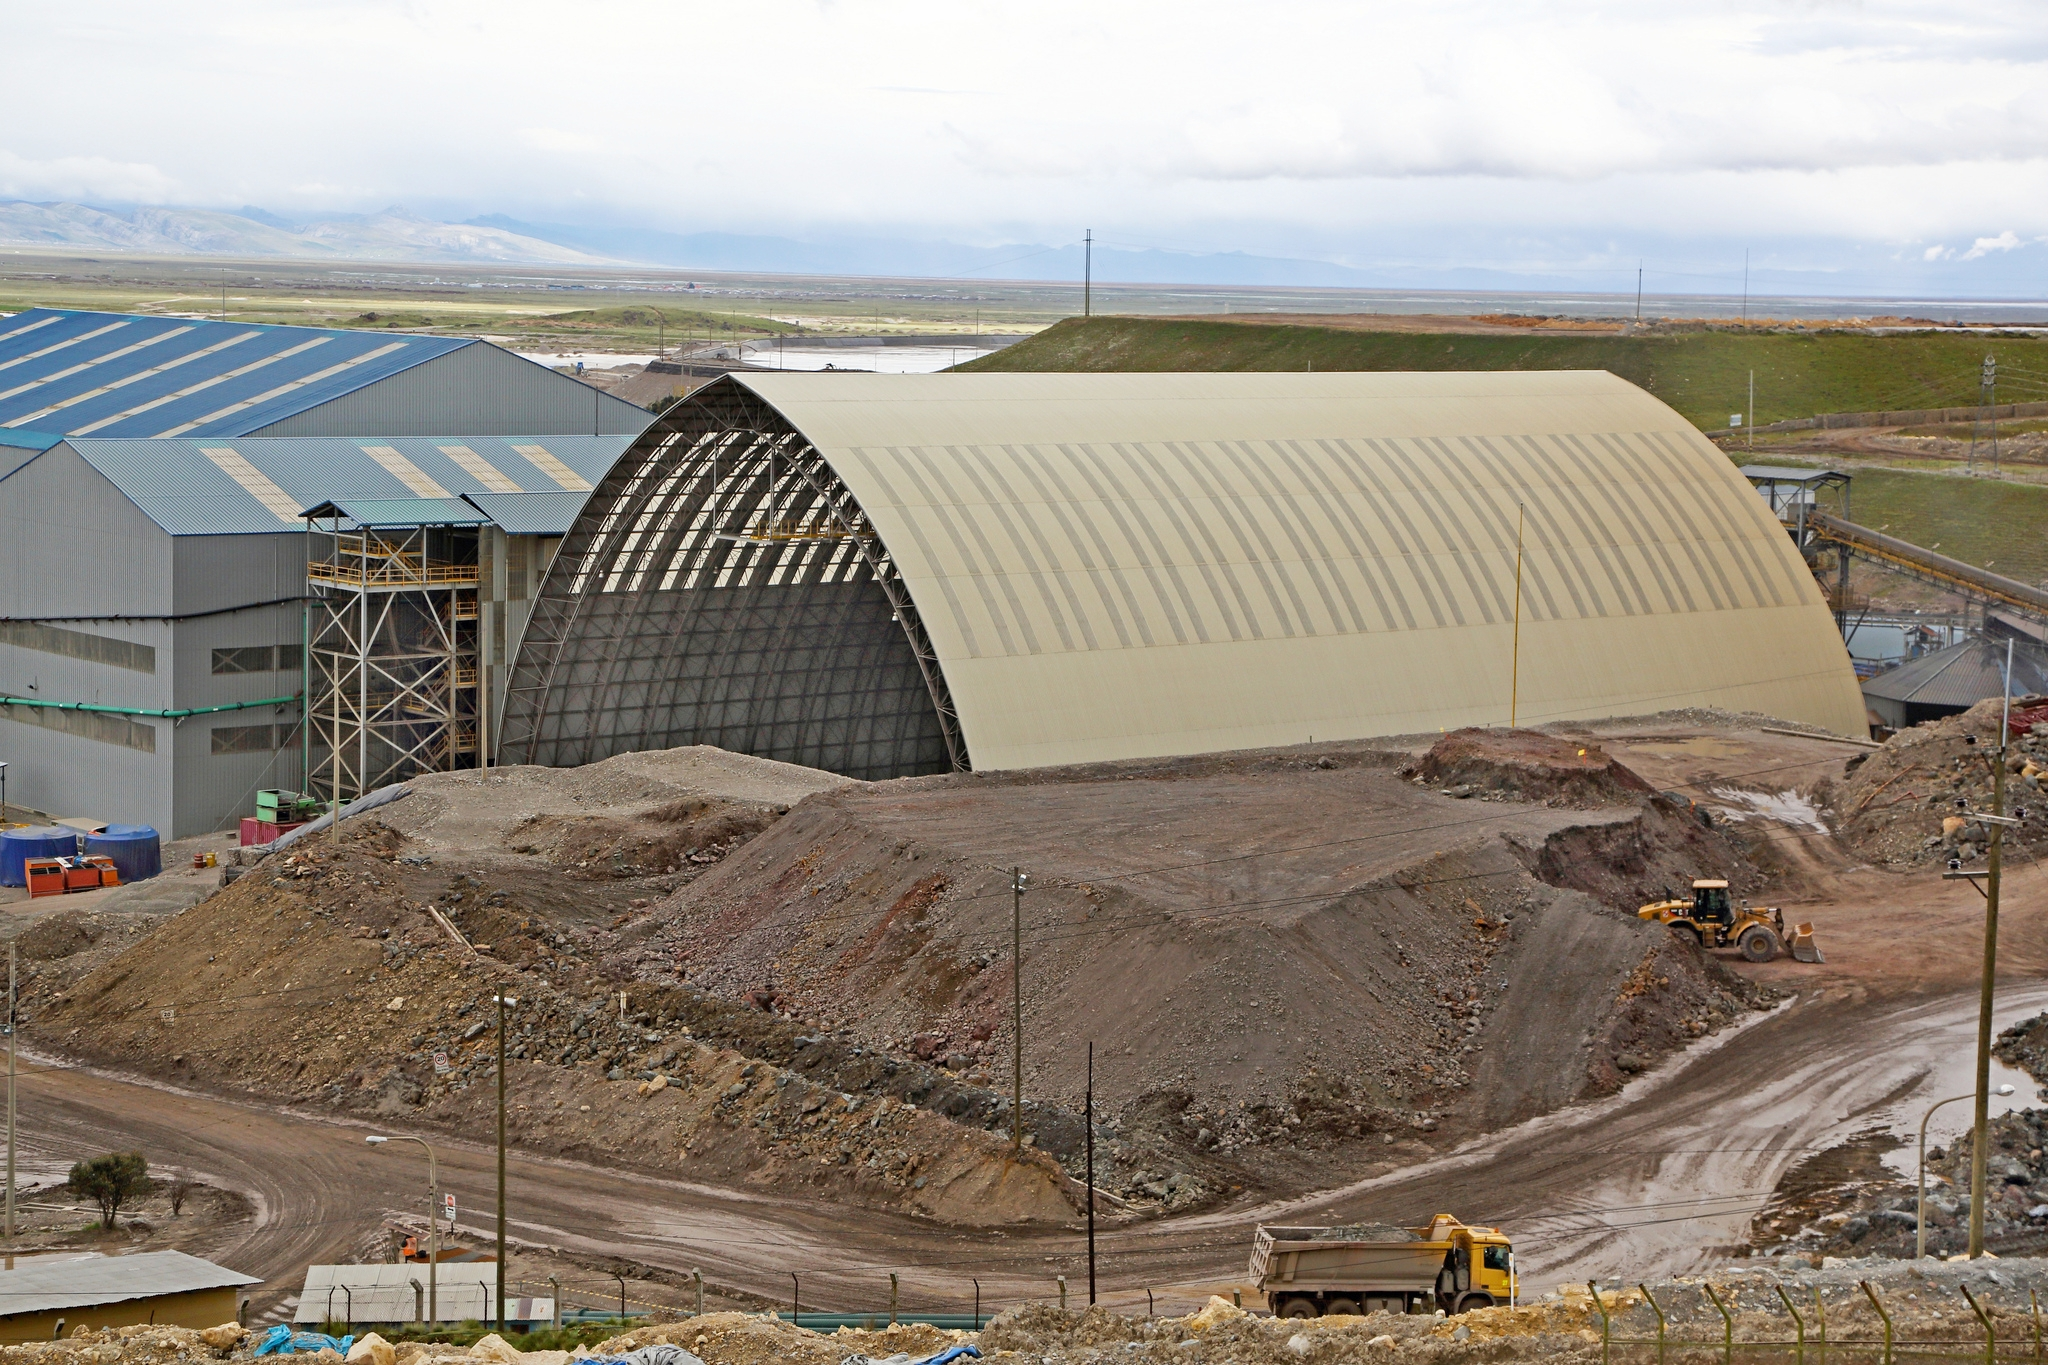 The new ore-storage building was constructed by Geometrica at Mina El Brocal in Cerro de Pasco, Tinyahuarco District, Peru.